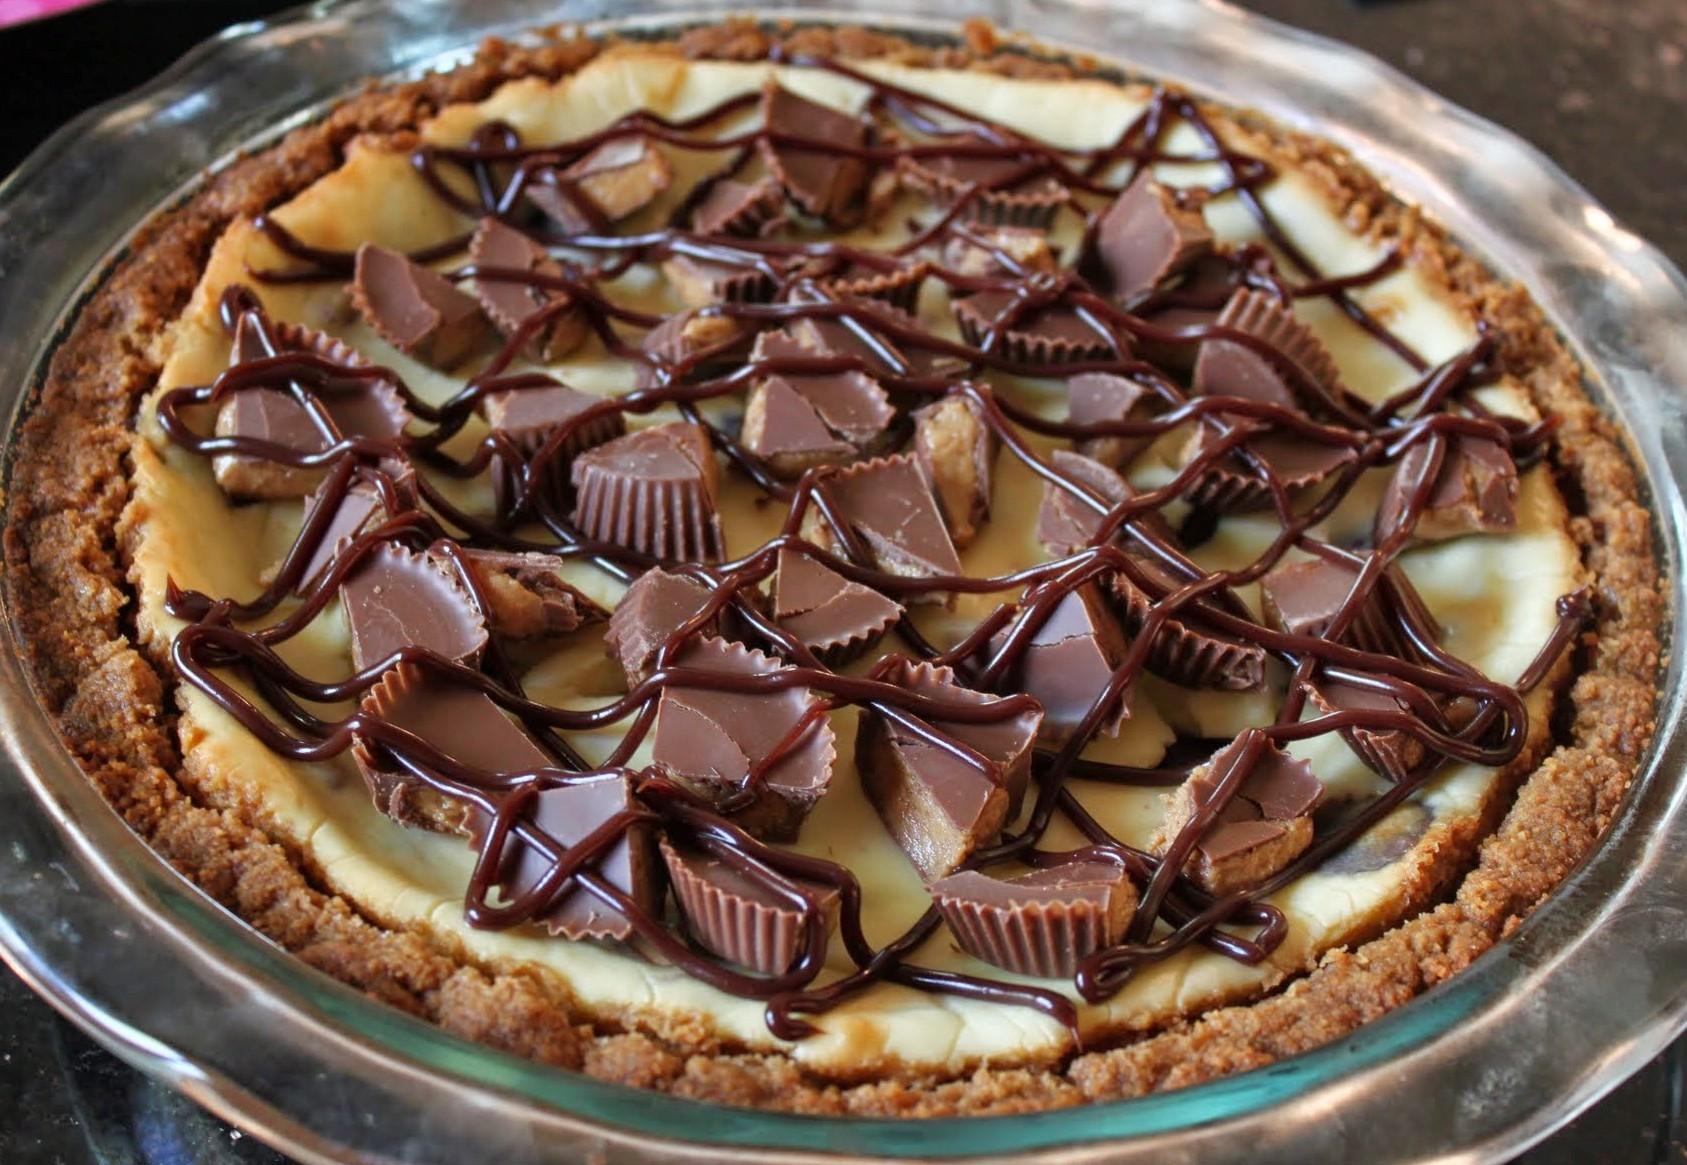 Peanut Butter Cup Cheesepake